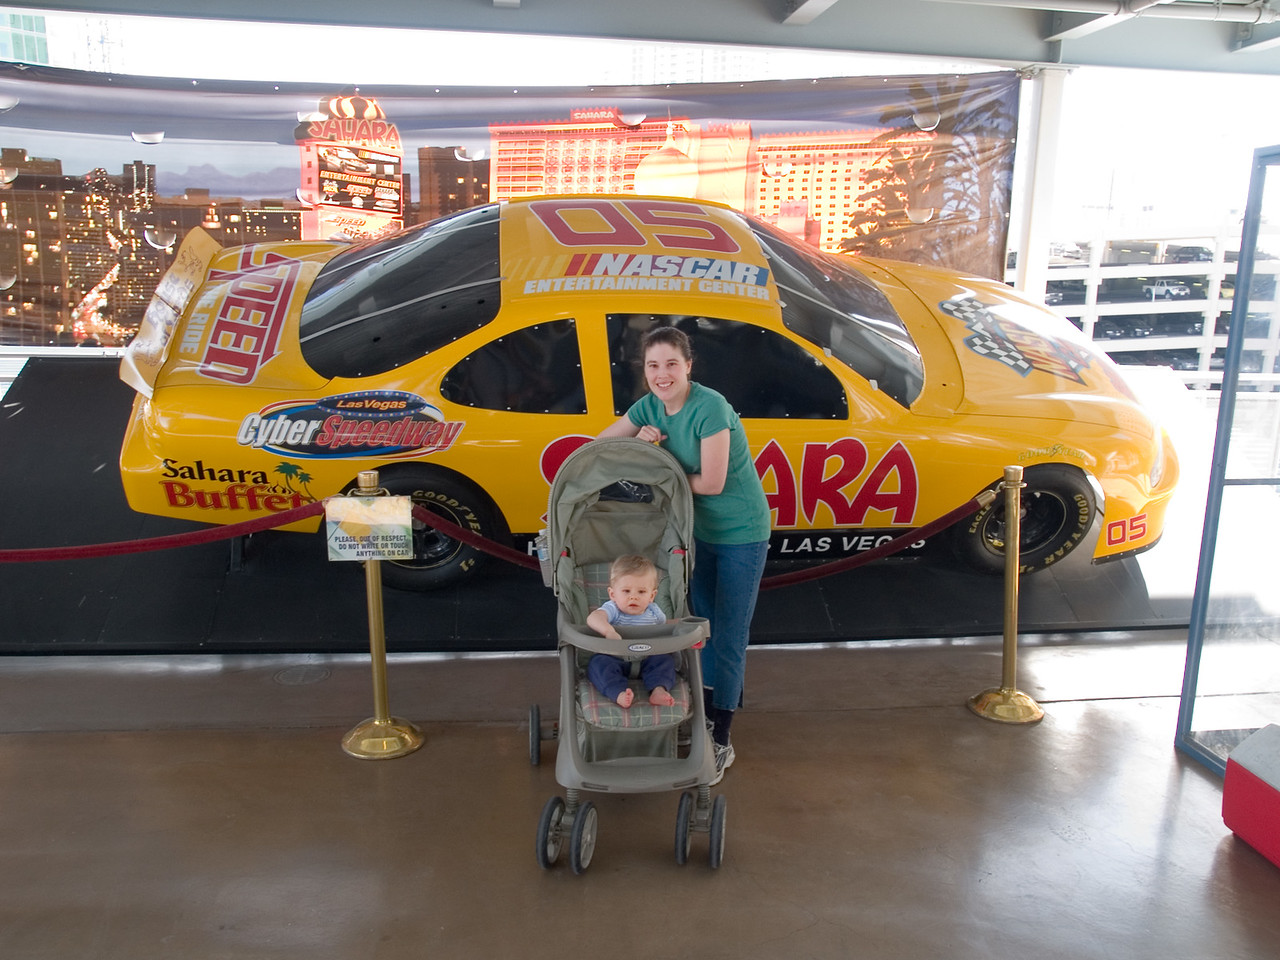 Katie and Cody by the Nascar by the Sahara hotel. 3/10